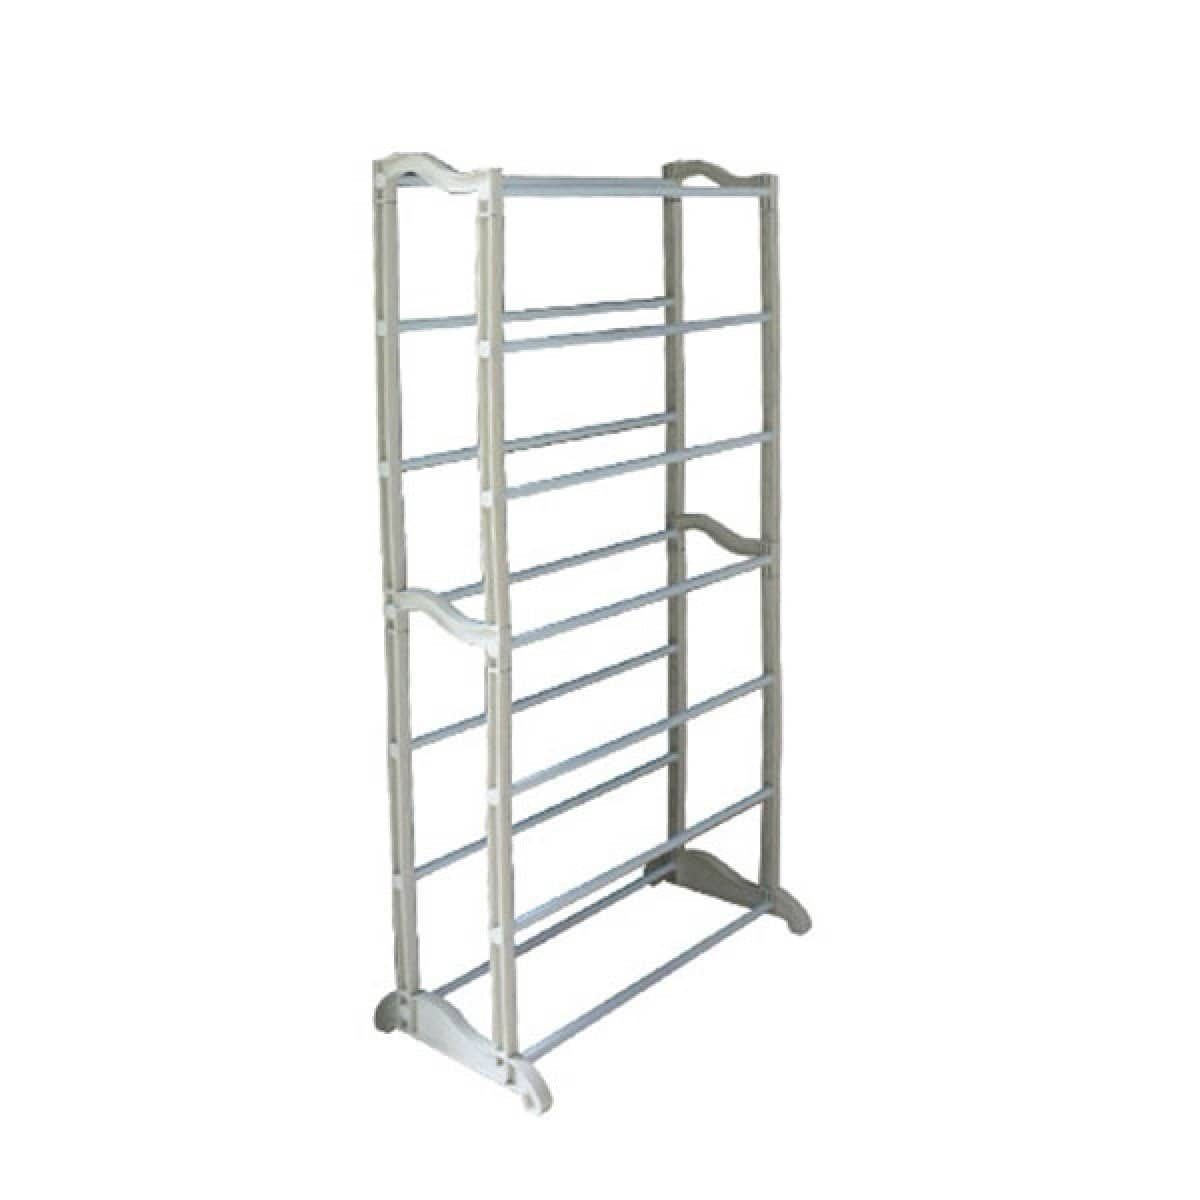 Shoe Rack - 7 Tier Snatcher Online Shopping South Africa